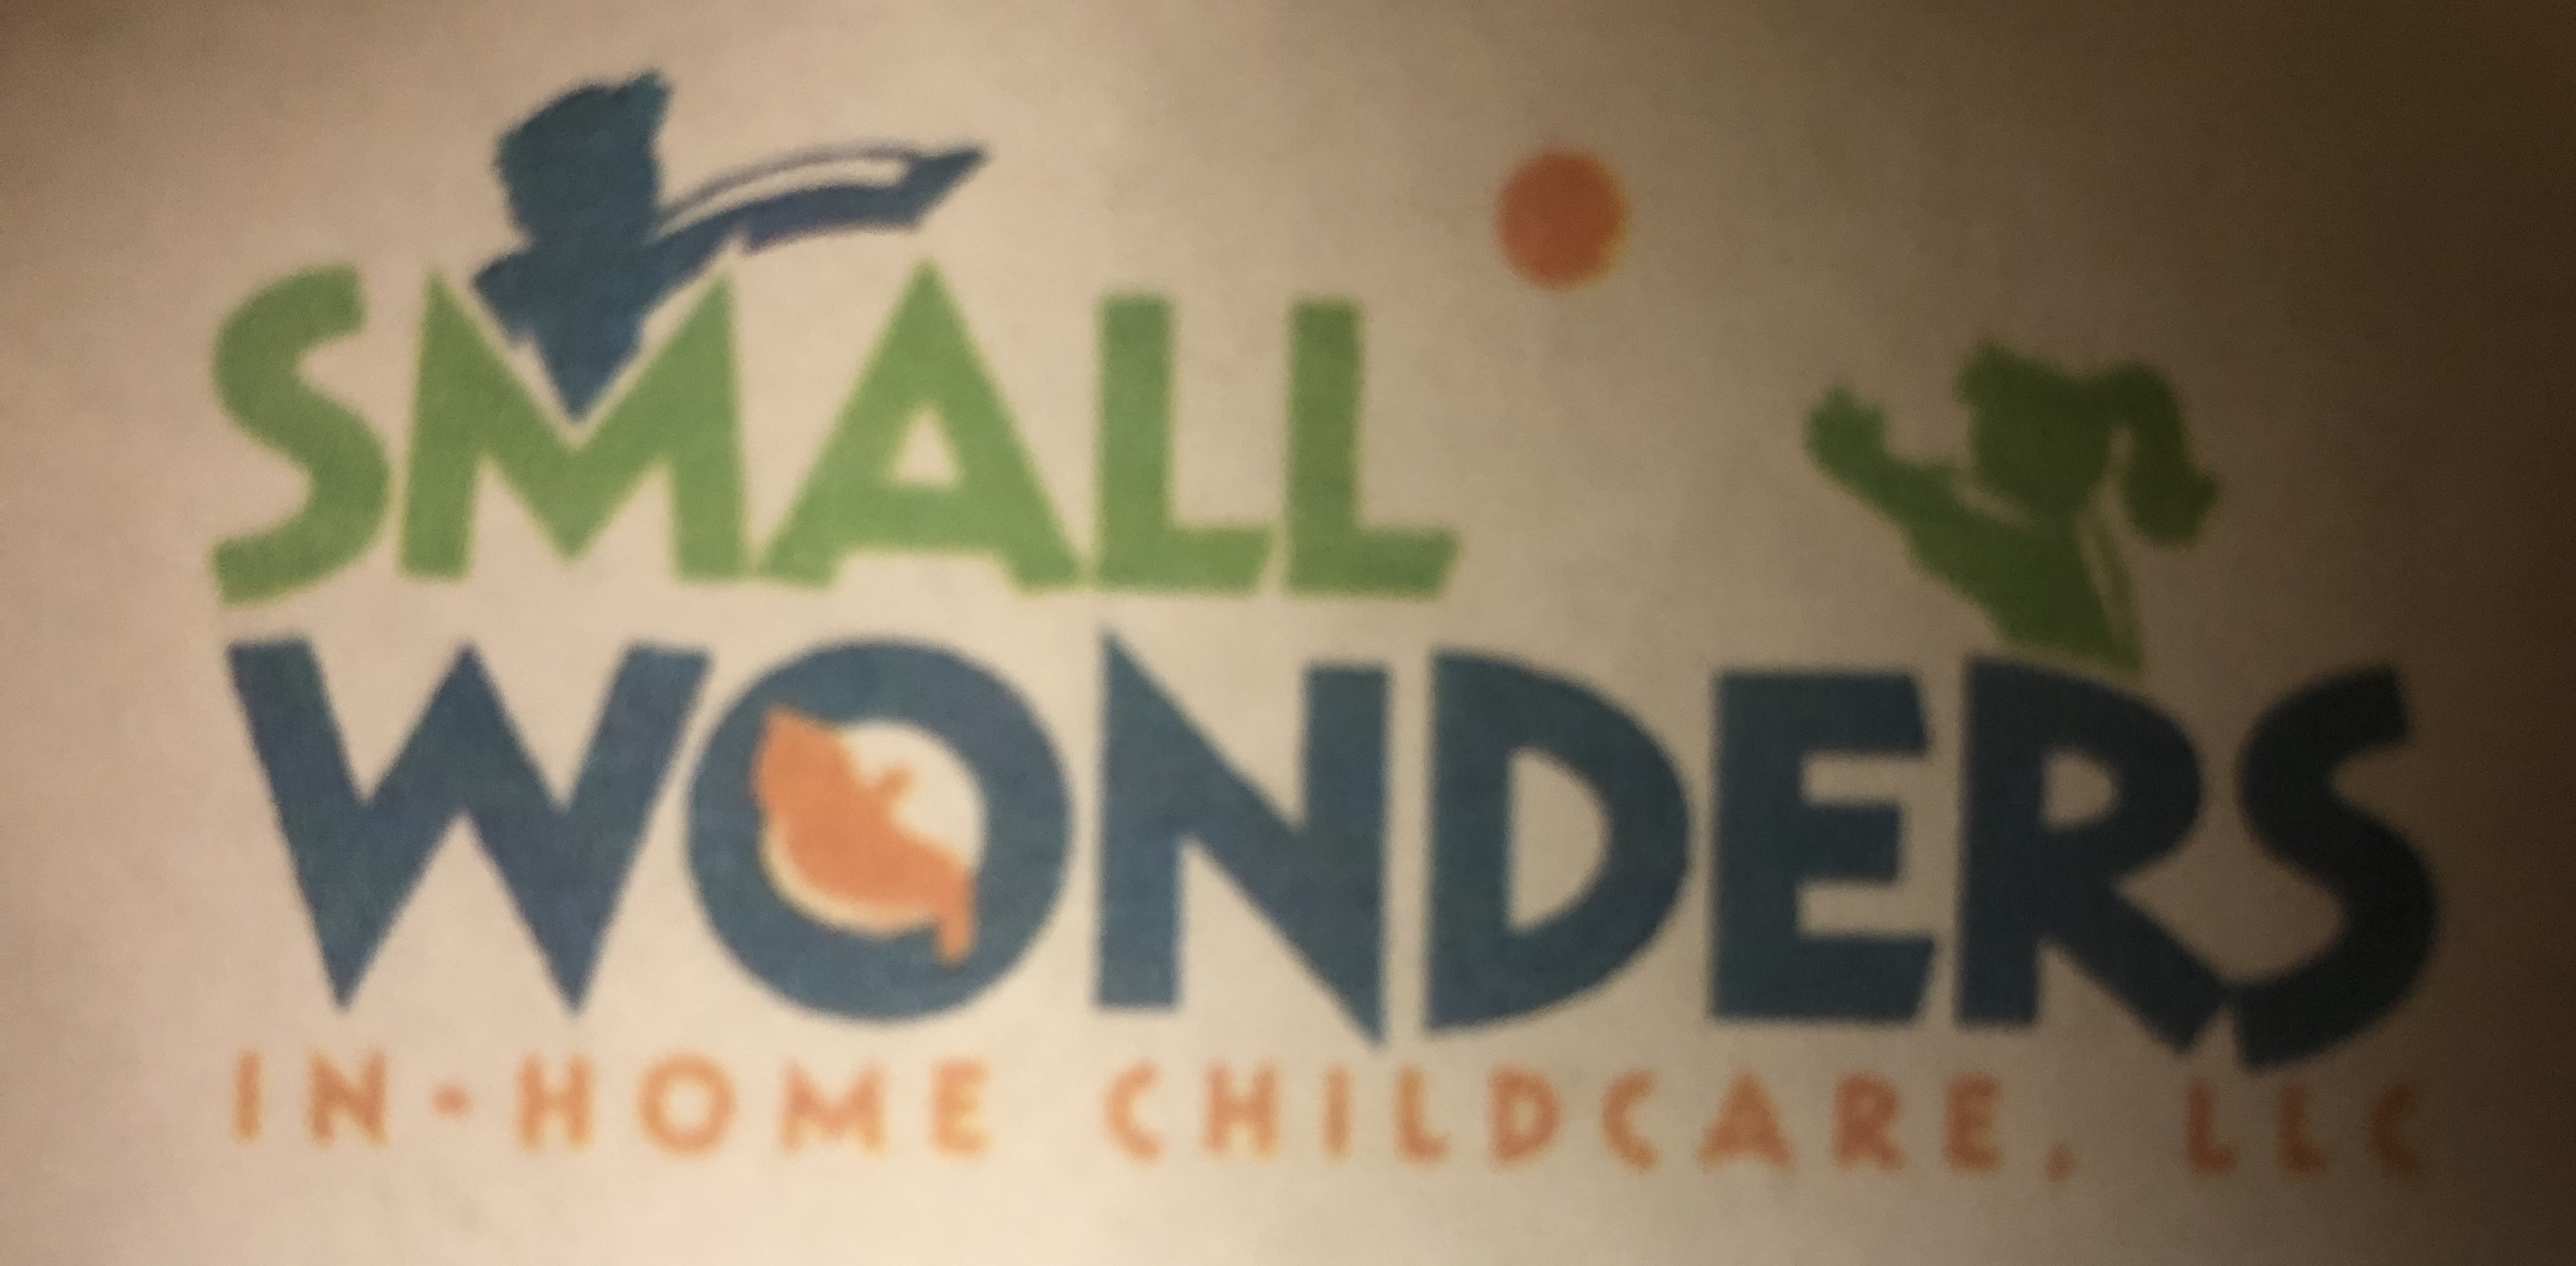 Small Wonders Child Care